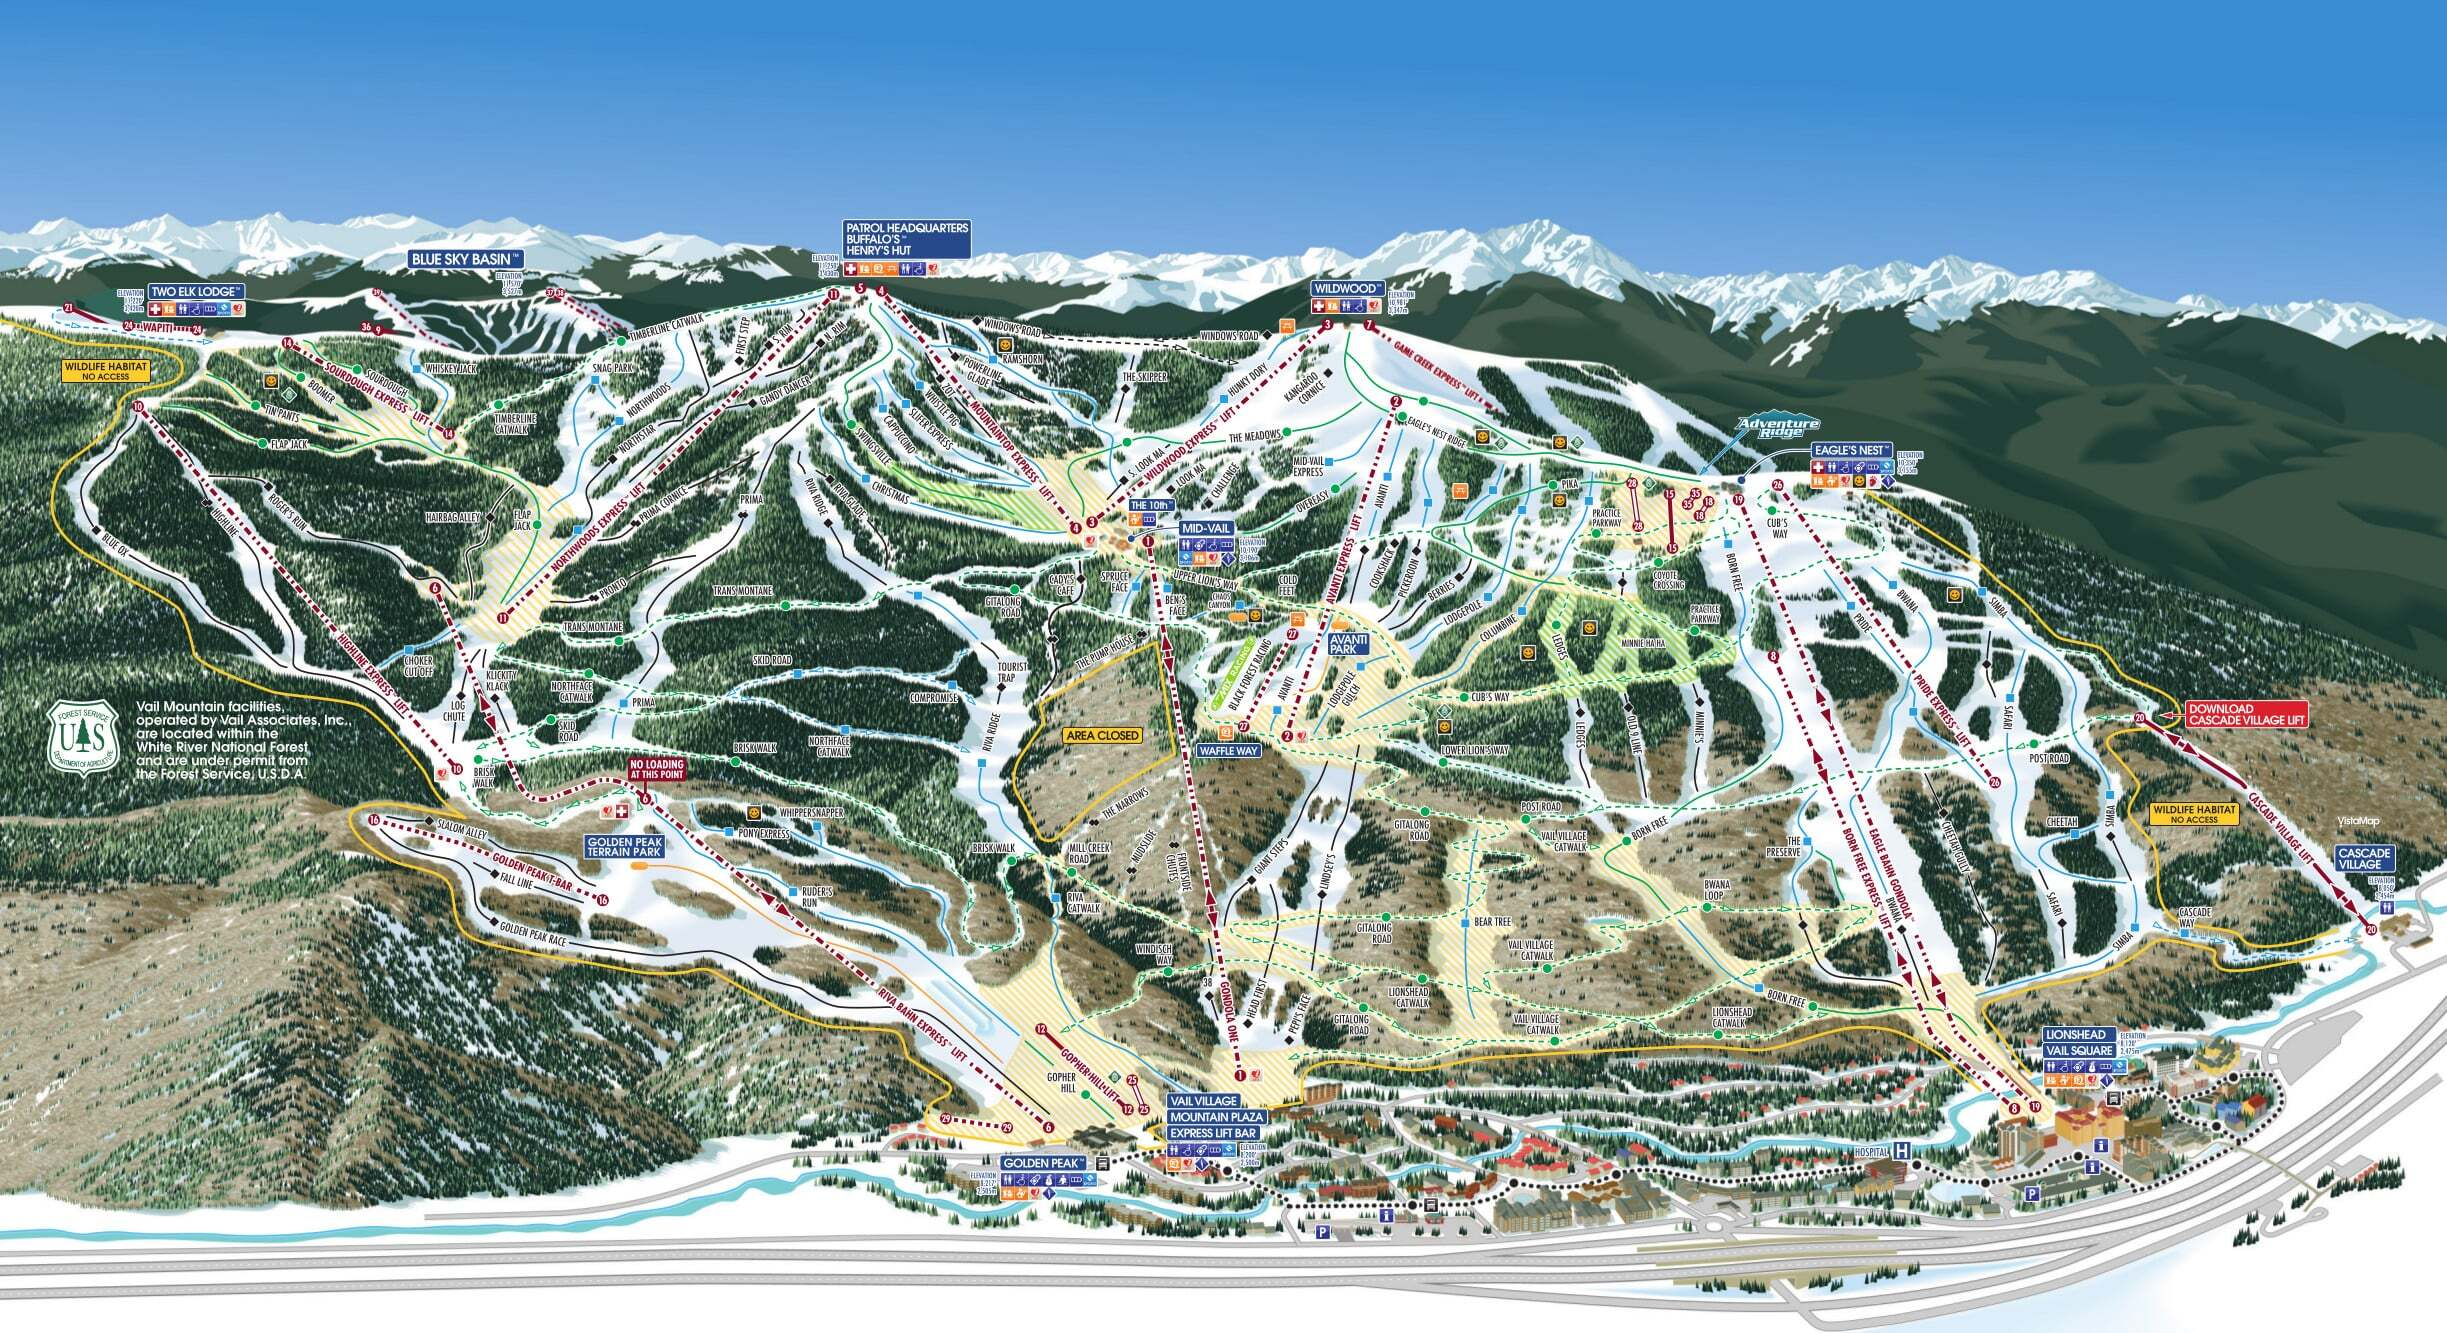 Click the map to view a full-sized version of the trails at Vail ski resort.